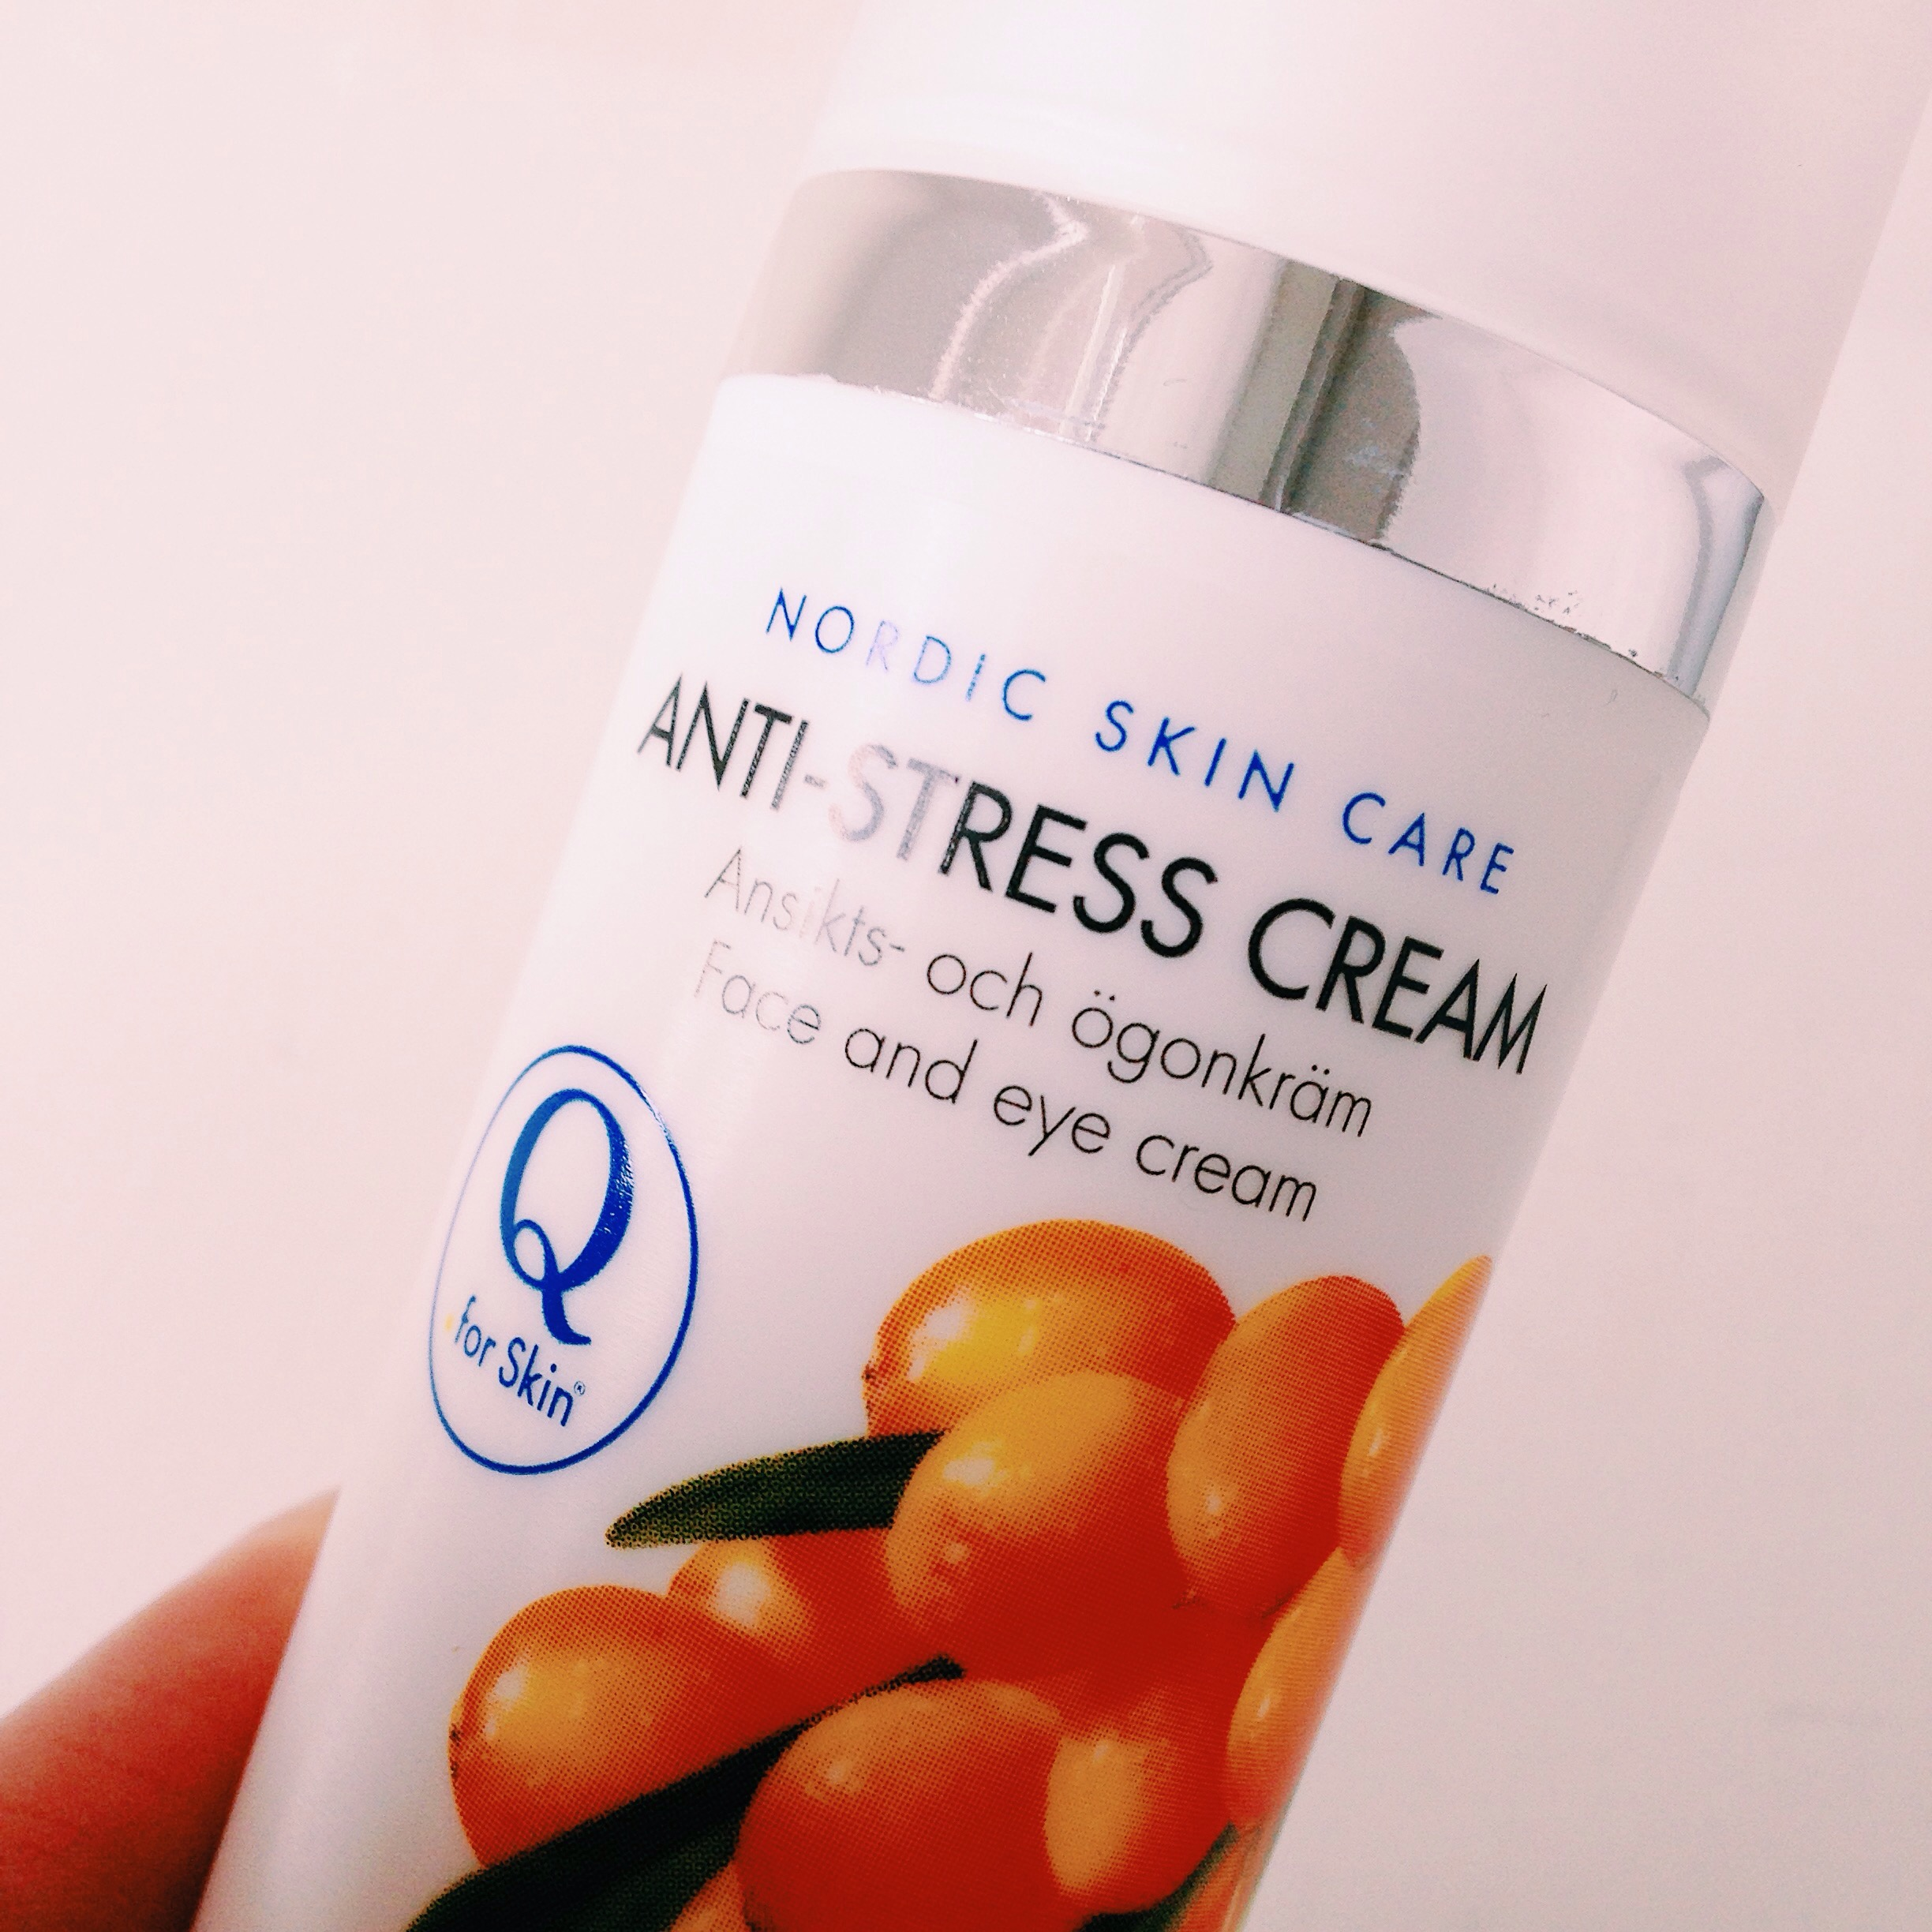 anti stress cream - q for skin